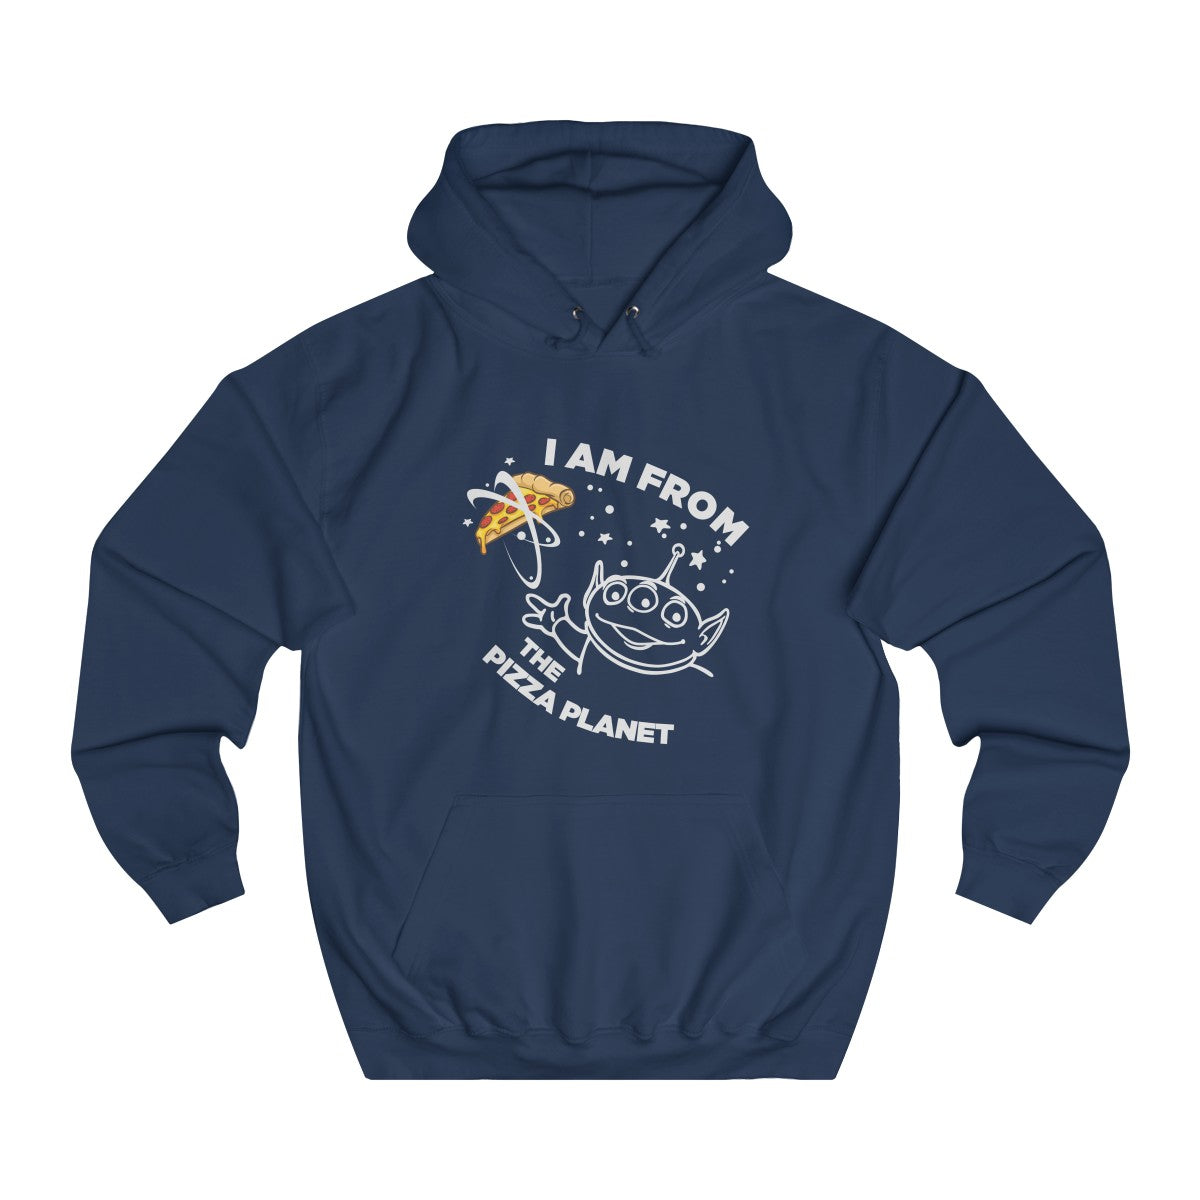 Amazing Hoodie the planet Pizza